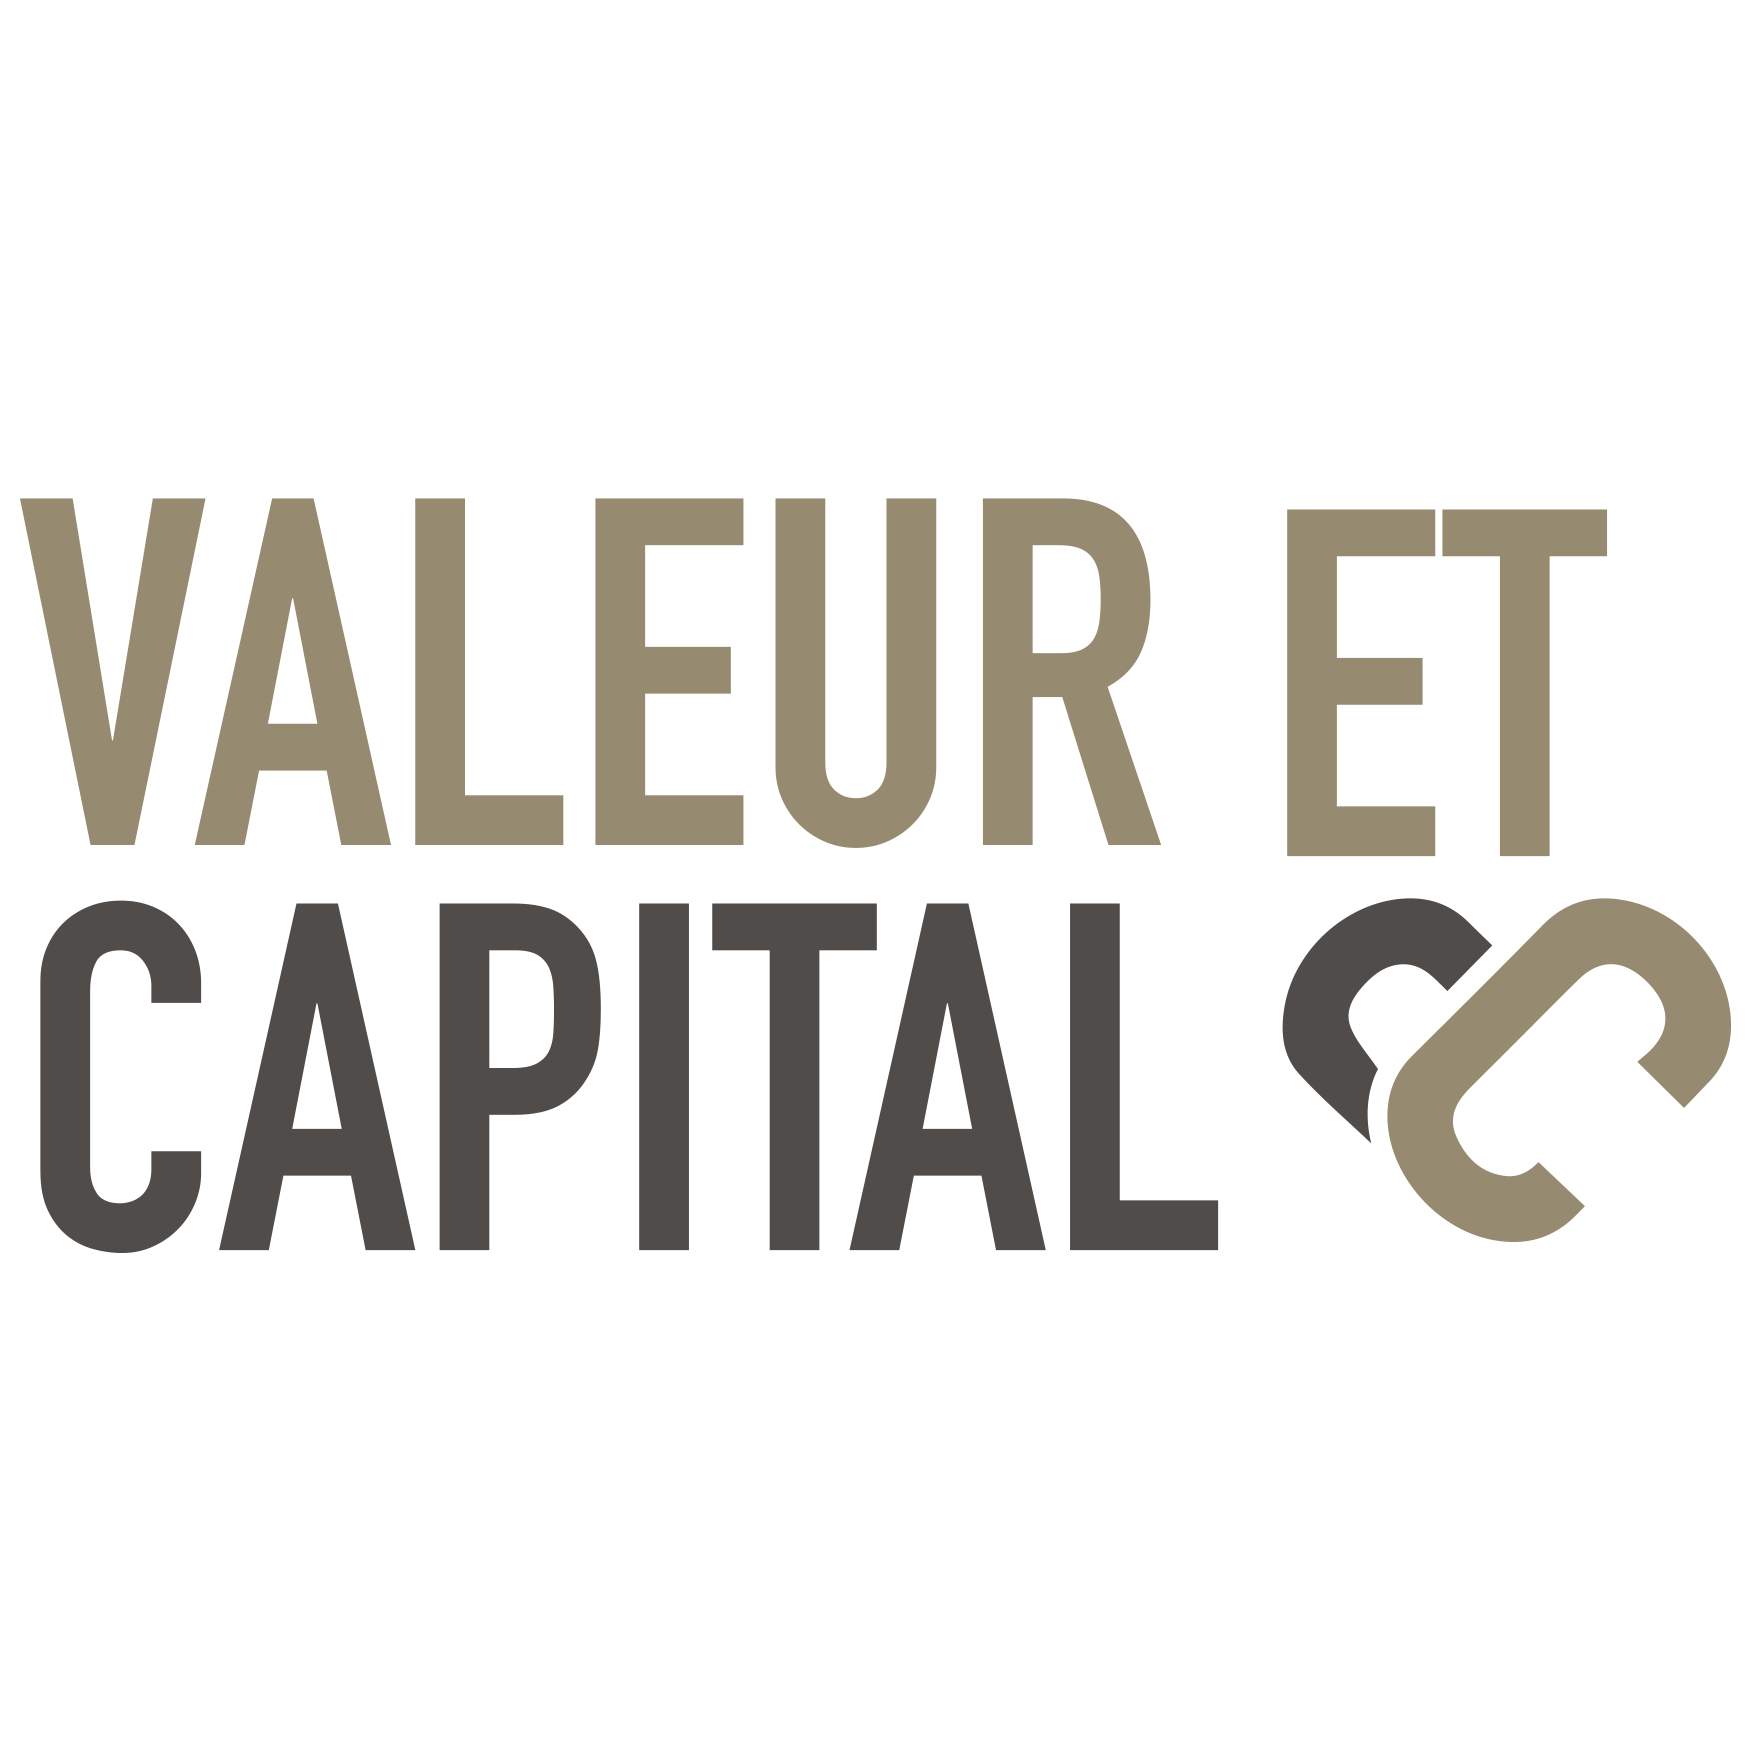 Valeuretcapital carre